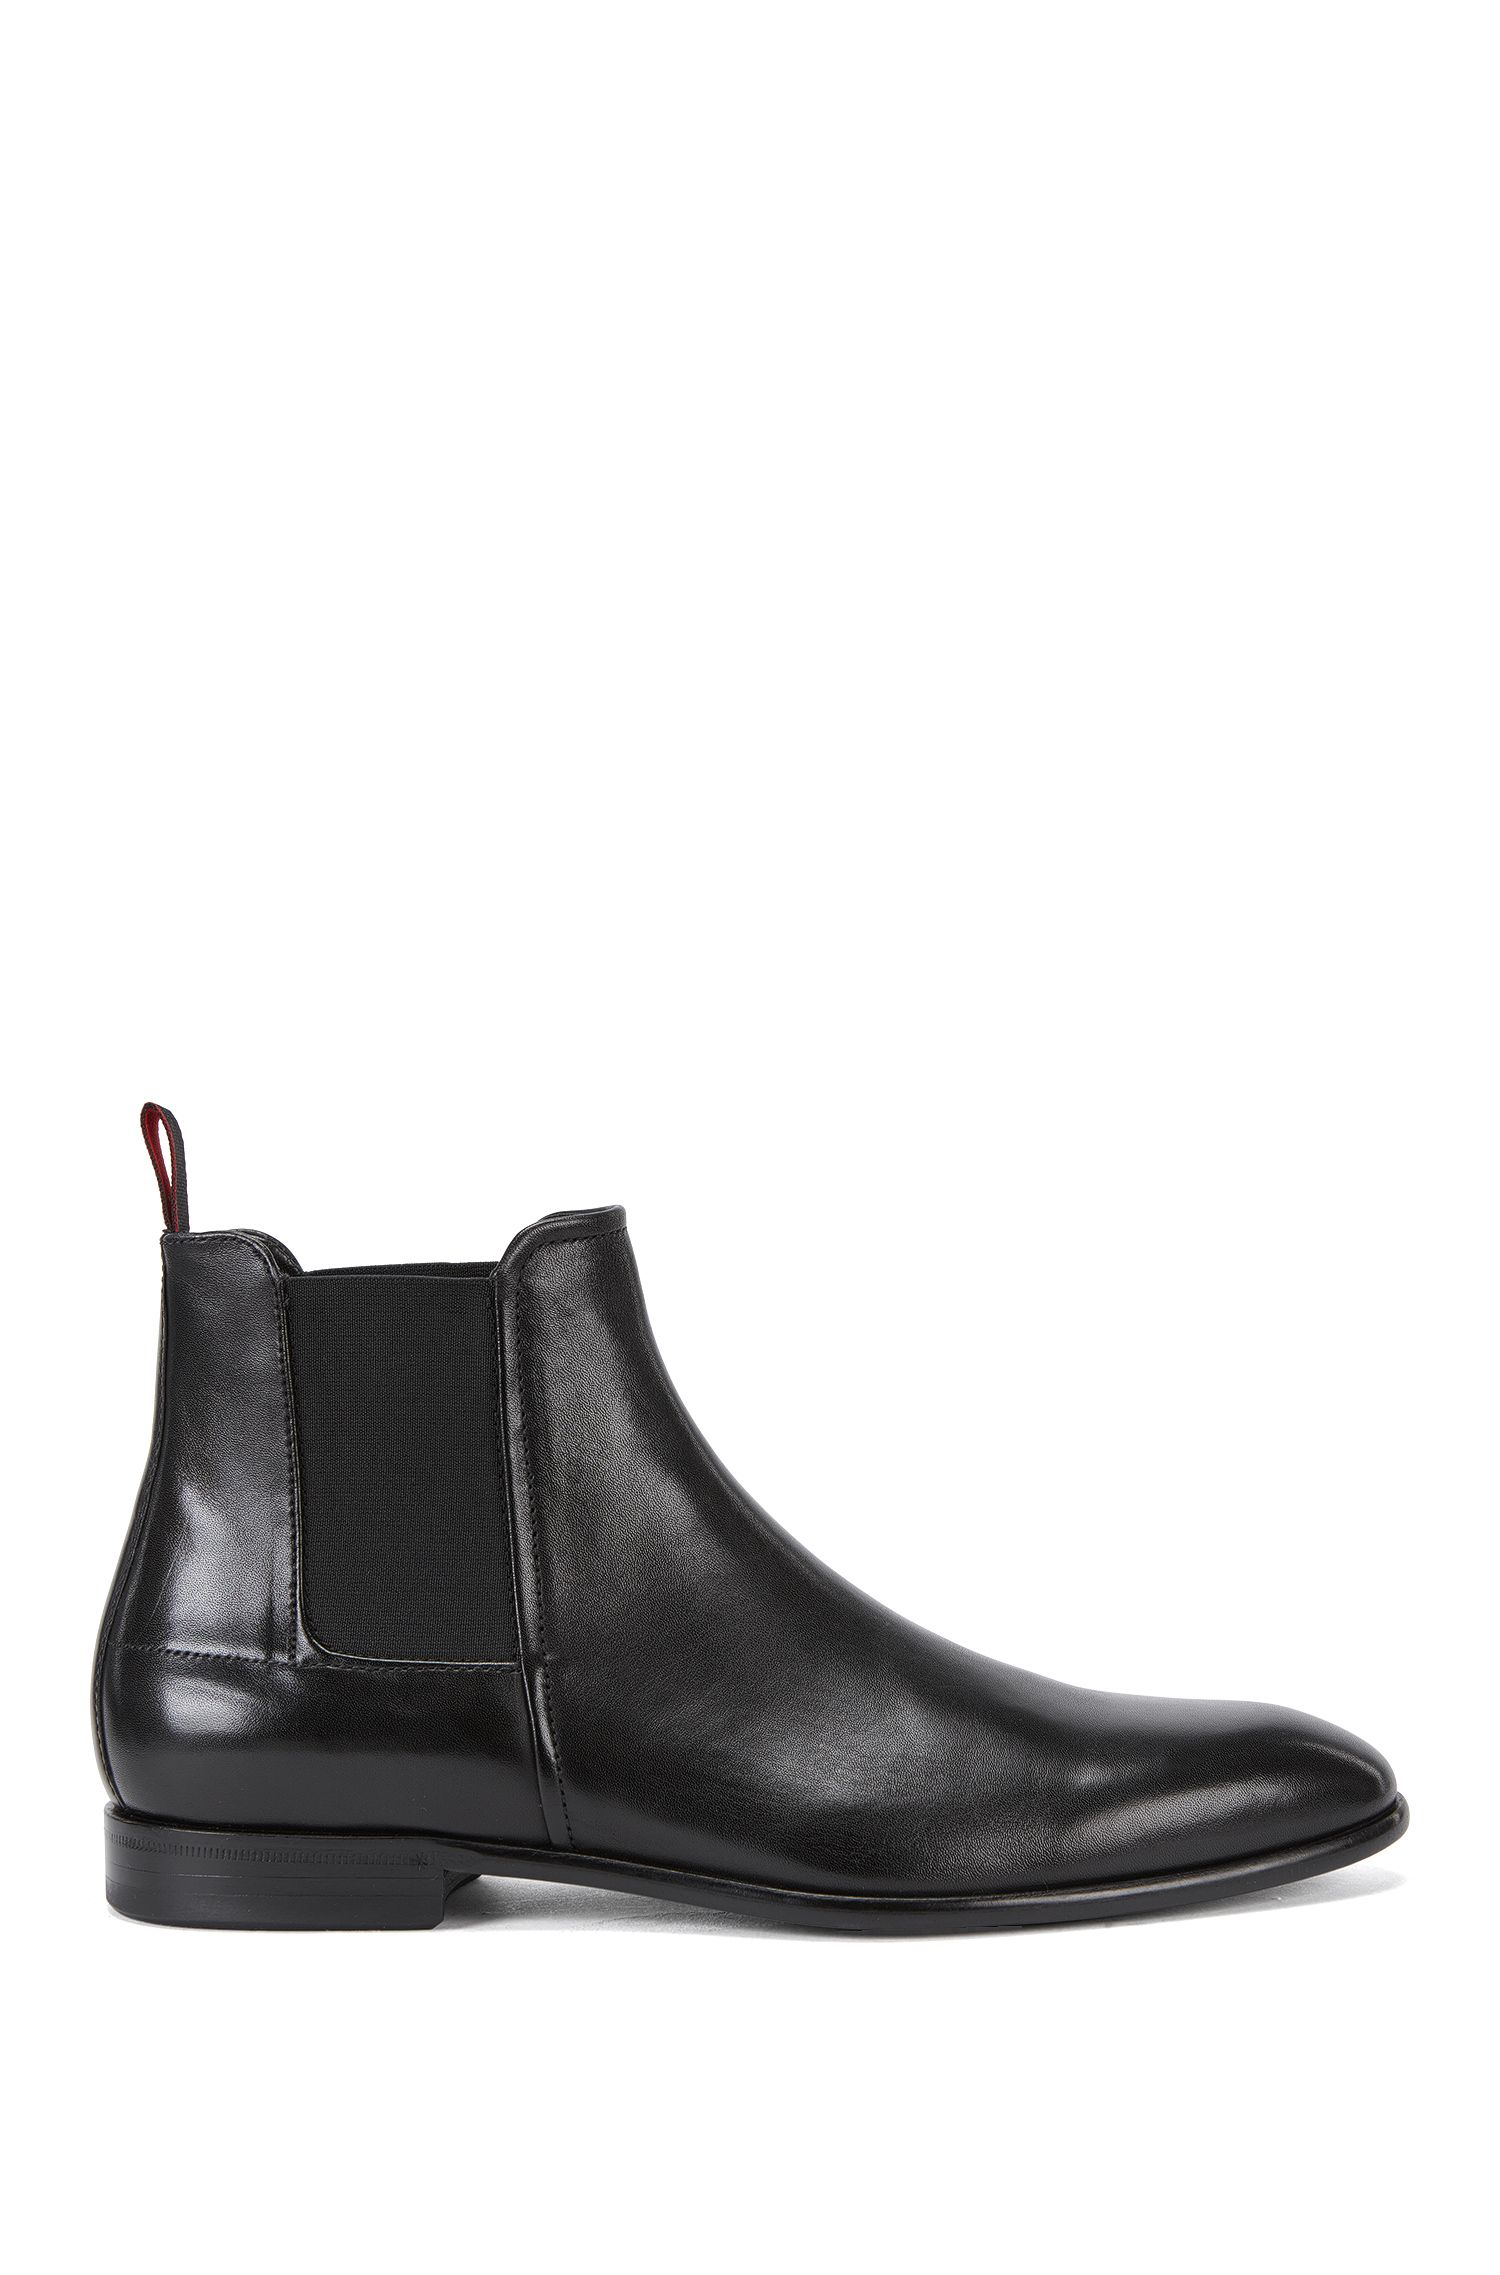 Formal Chelsea boots in rich leather